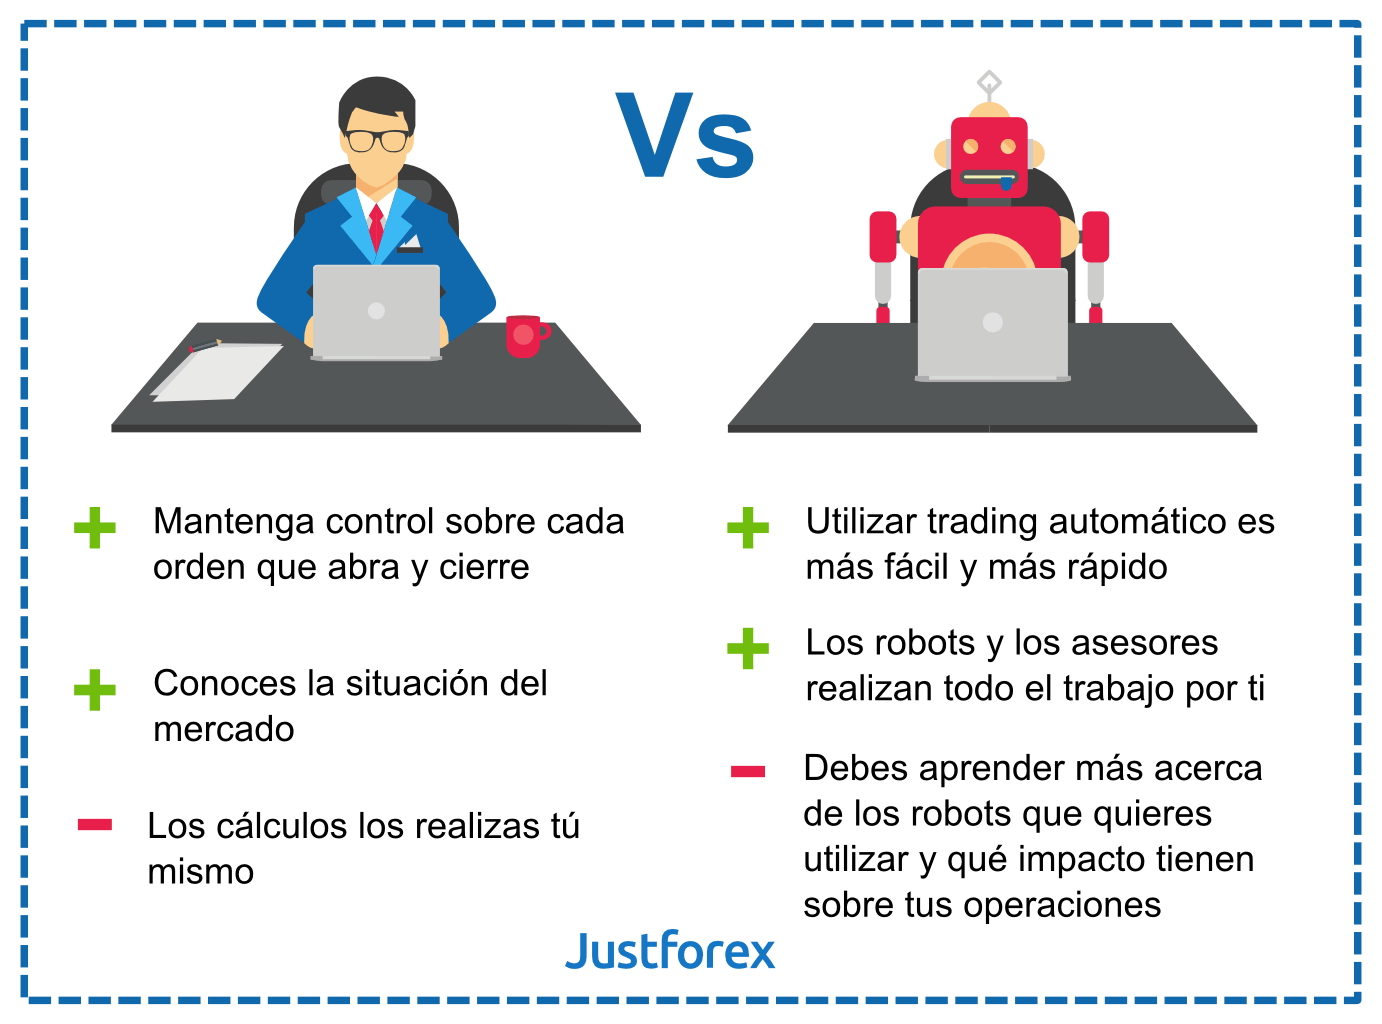 Trading manual vs. Trading automático